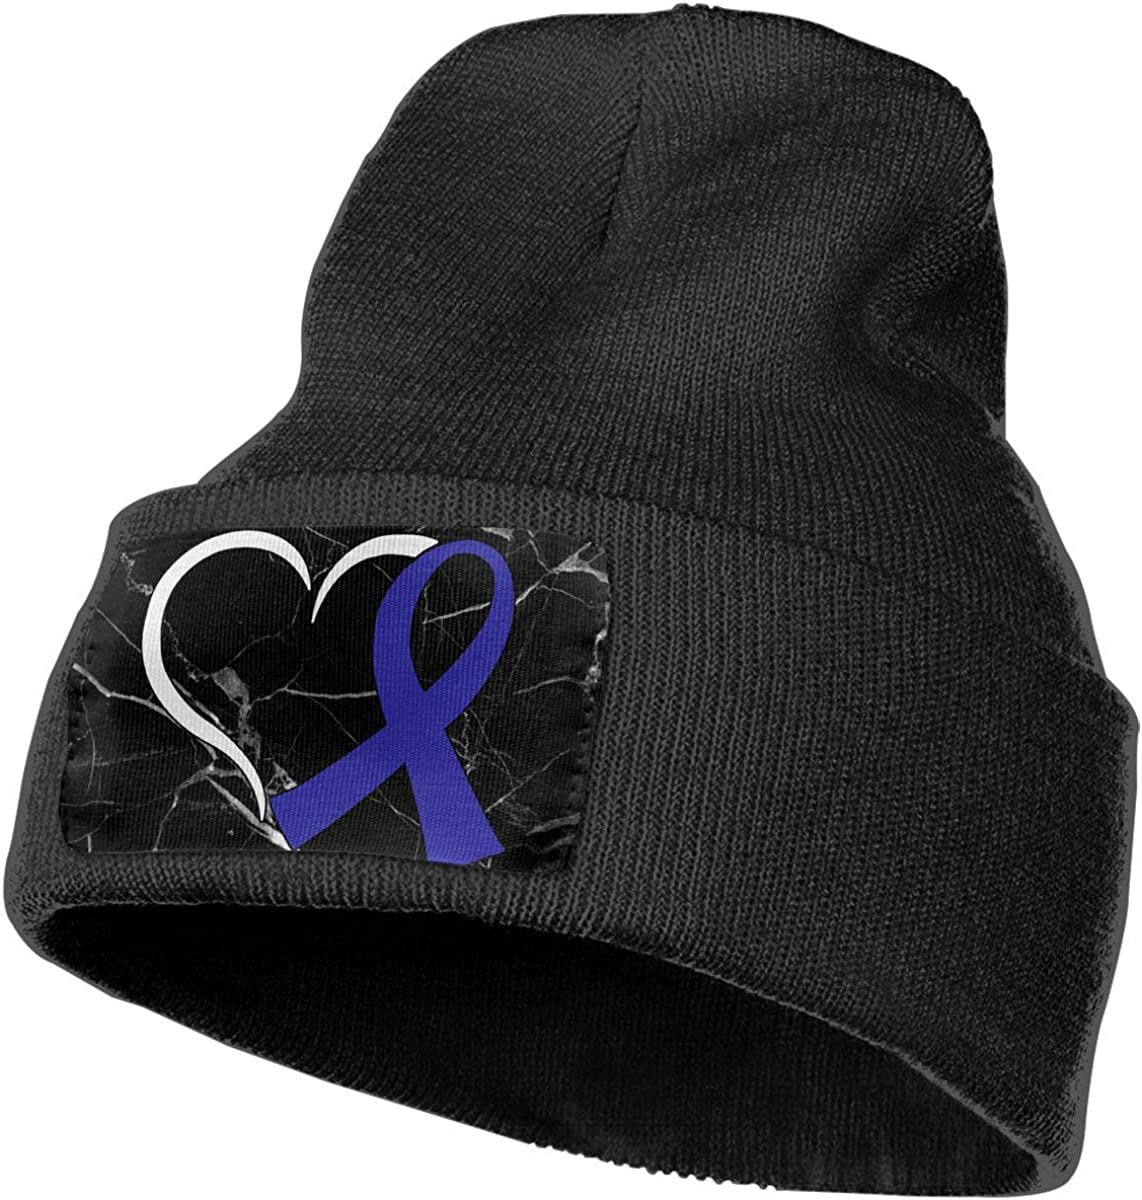 Heart Thyroid Cancer Awareness Beanie Cap Hat Men /& Women Knit Hats Stretchy /& Soft Beanie